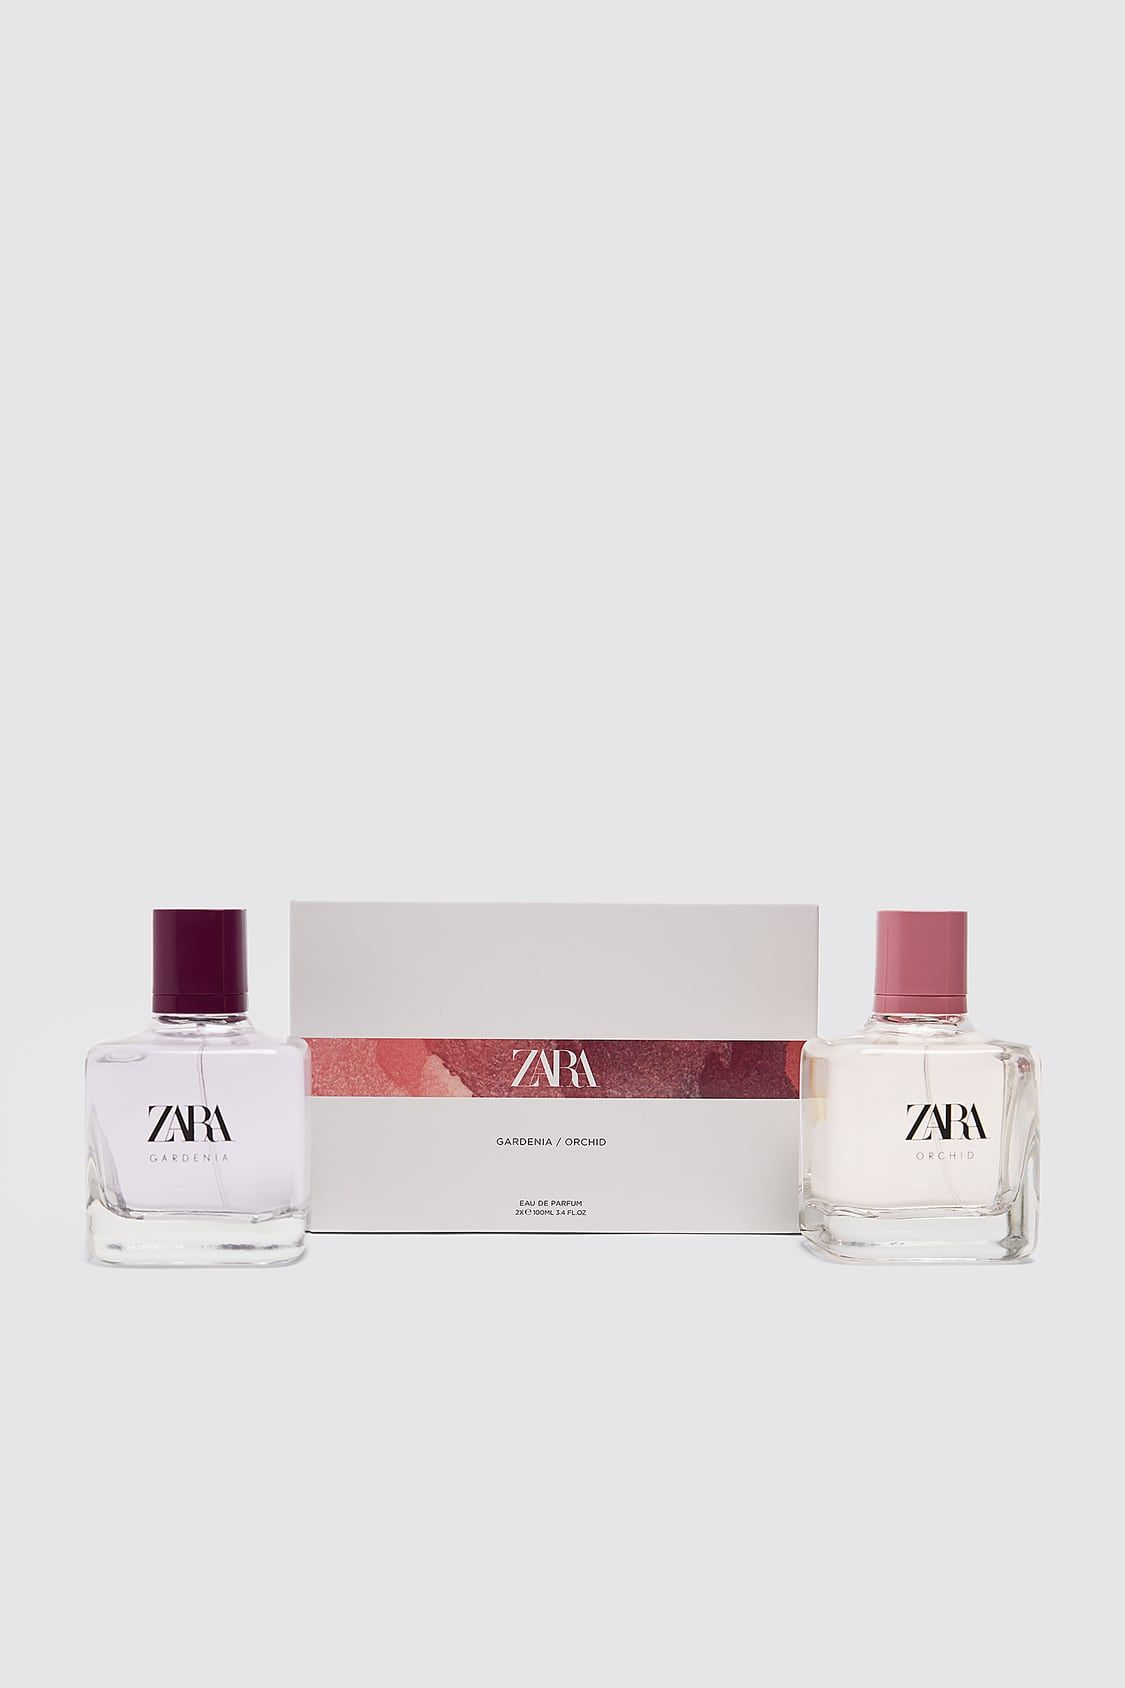 Gardenia Orchid 100ml In 2020 With Images Gardenia Perfume